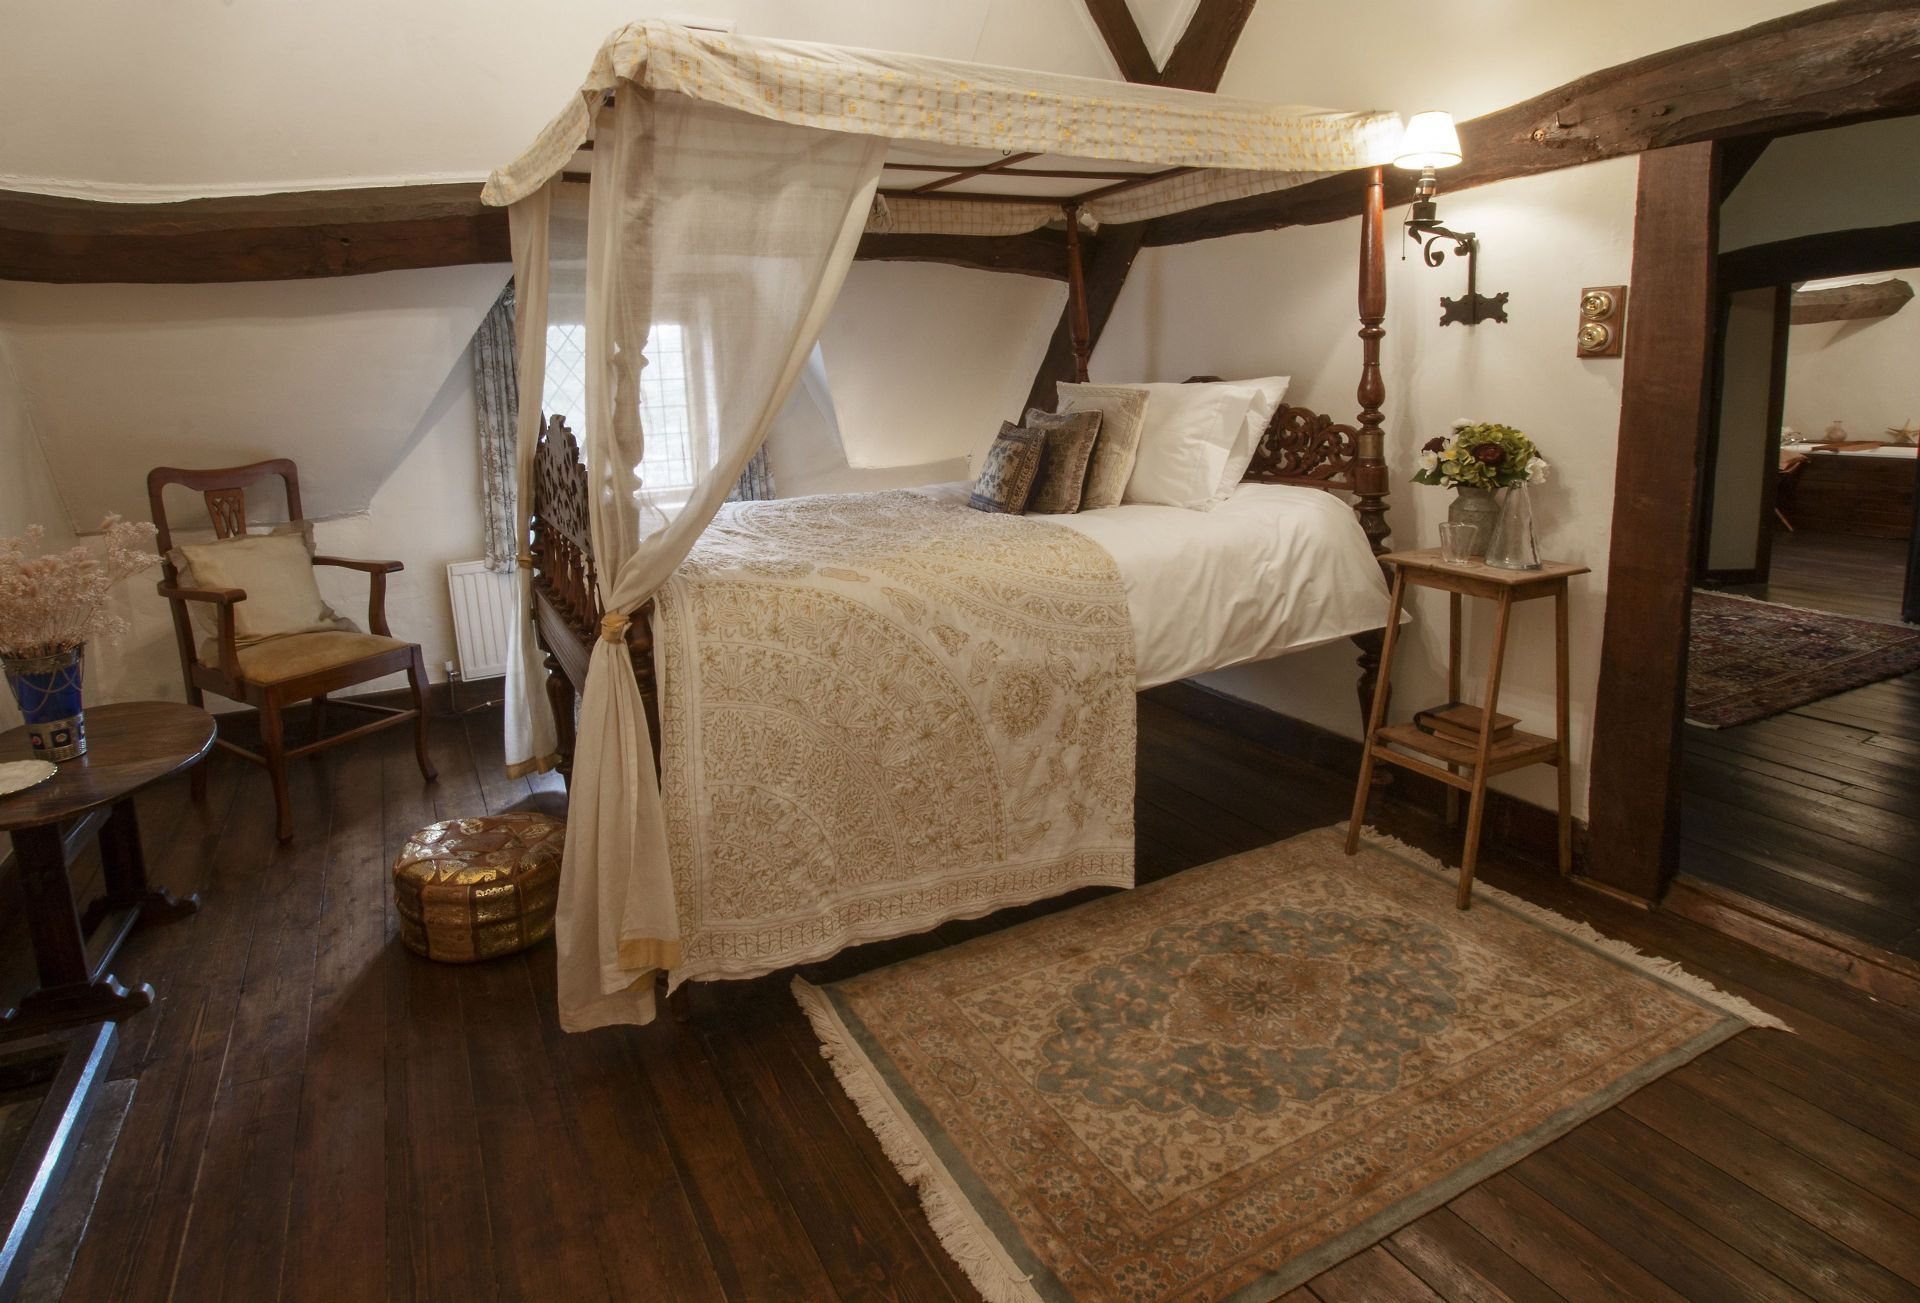 Second floor:  Bedroom five with antique, over-sized single four-poster Indian bed